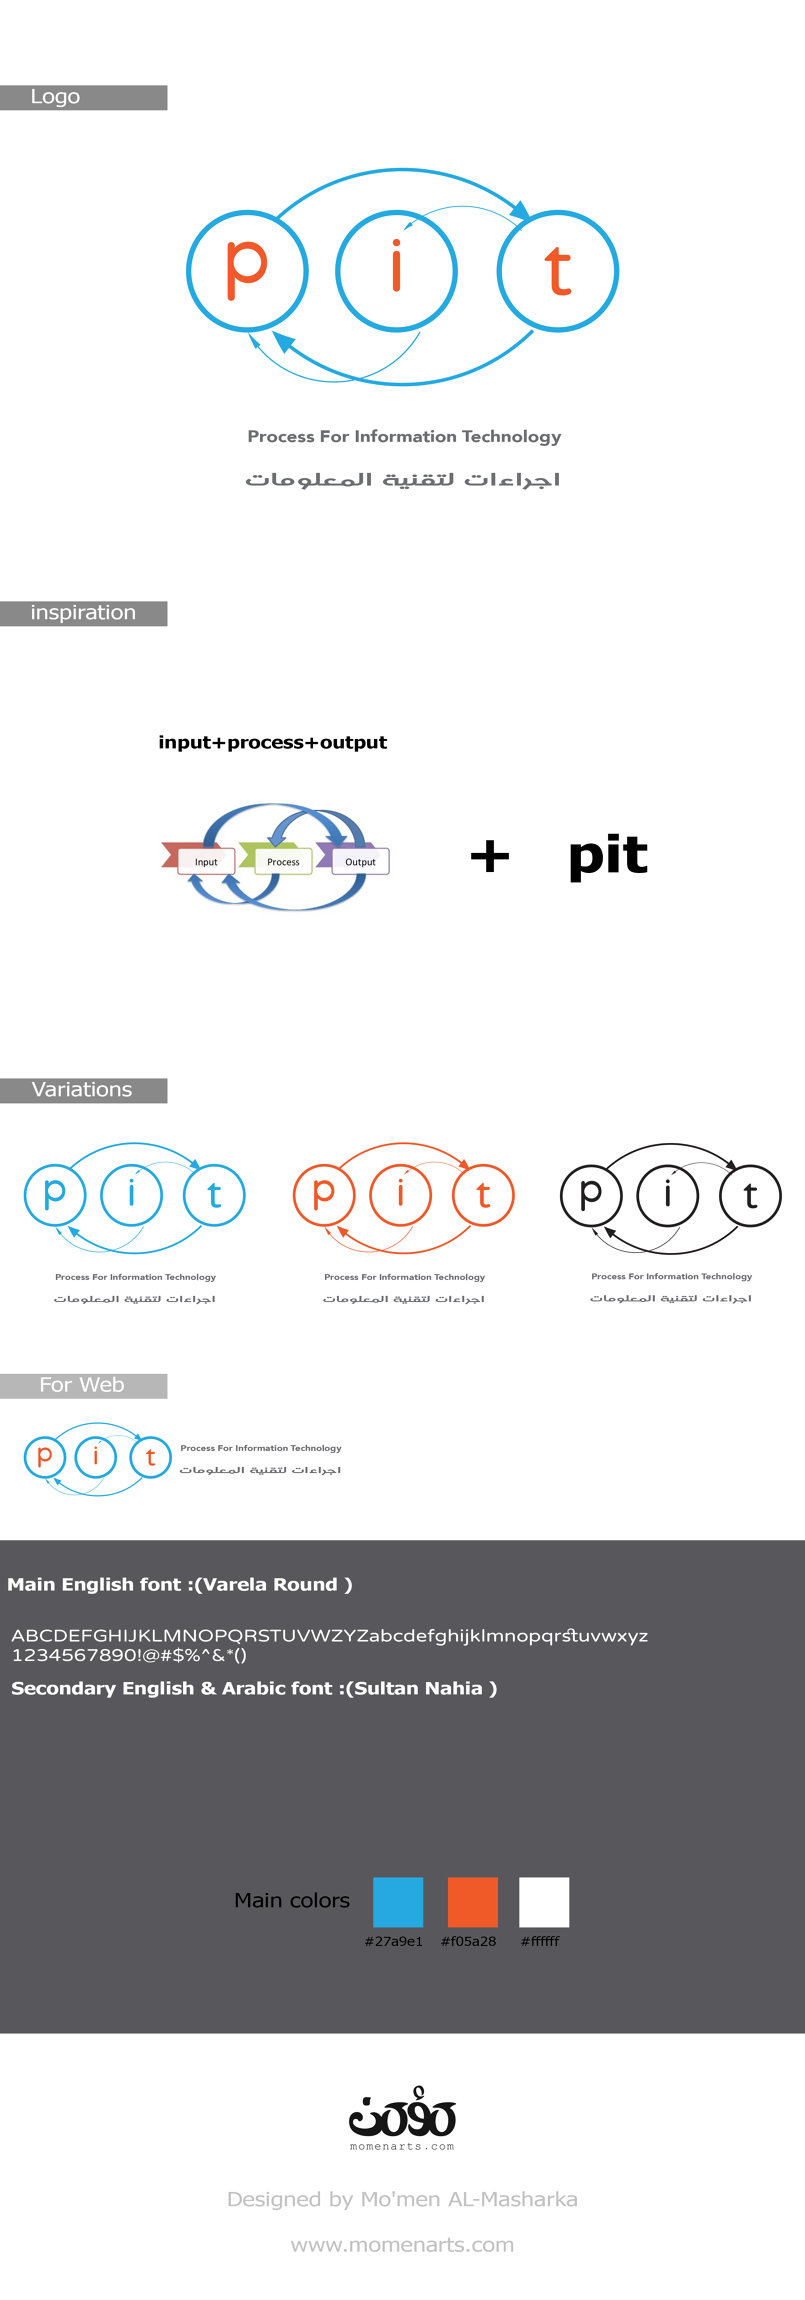 pit – process for information tecnology  country :Libya  Project designed in 2014 Mo'men AL-Masharka www.momenarts.com